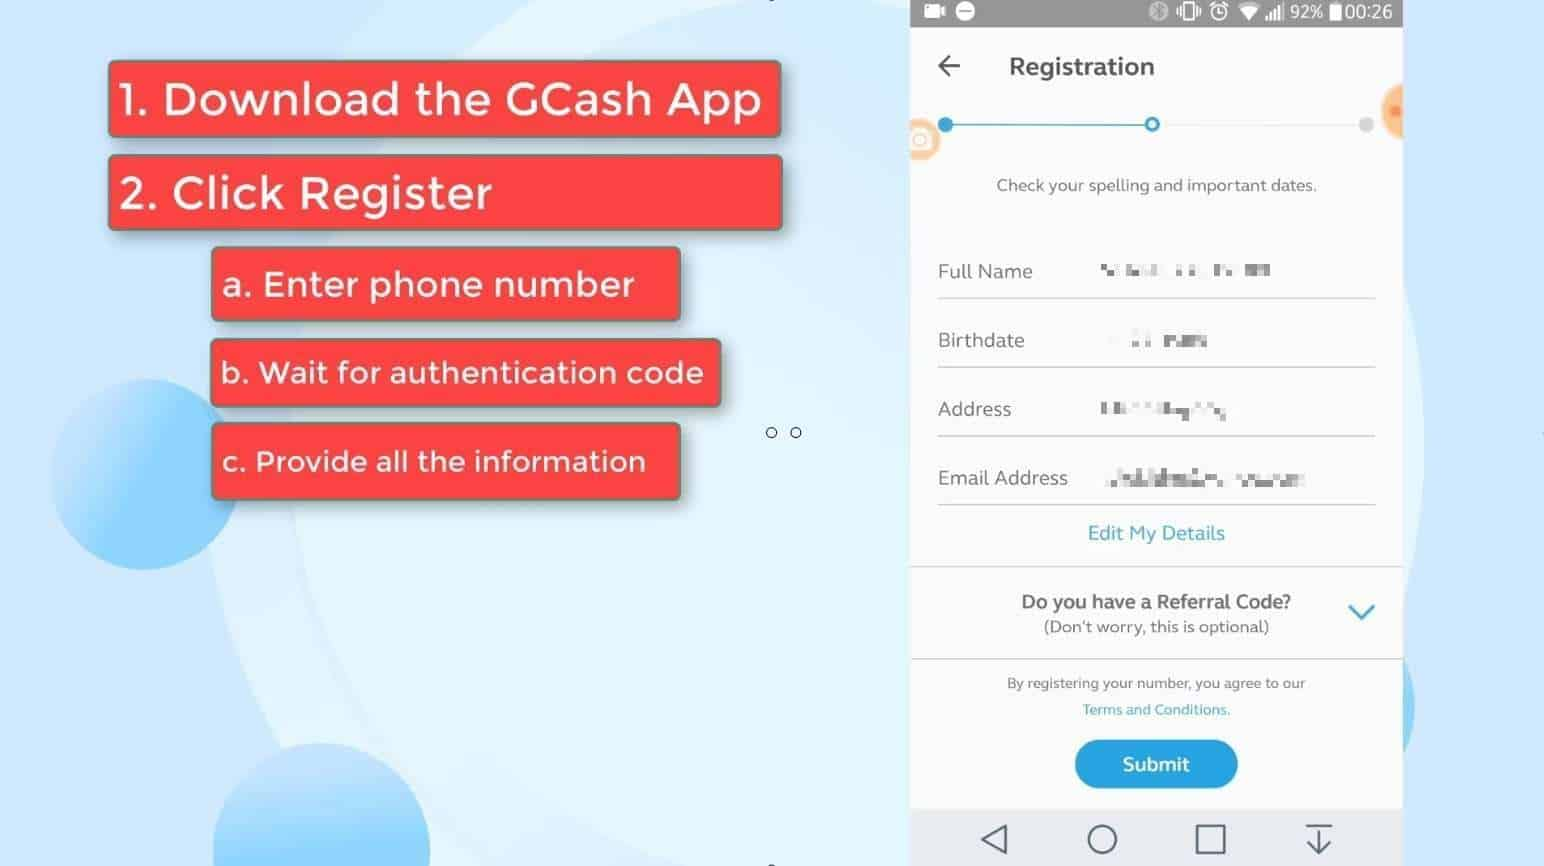 GCash Verify 9